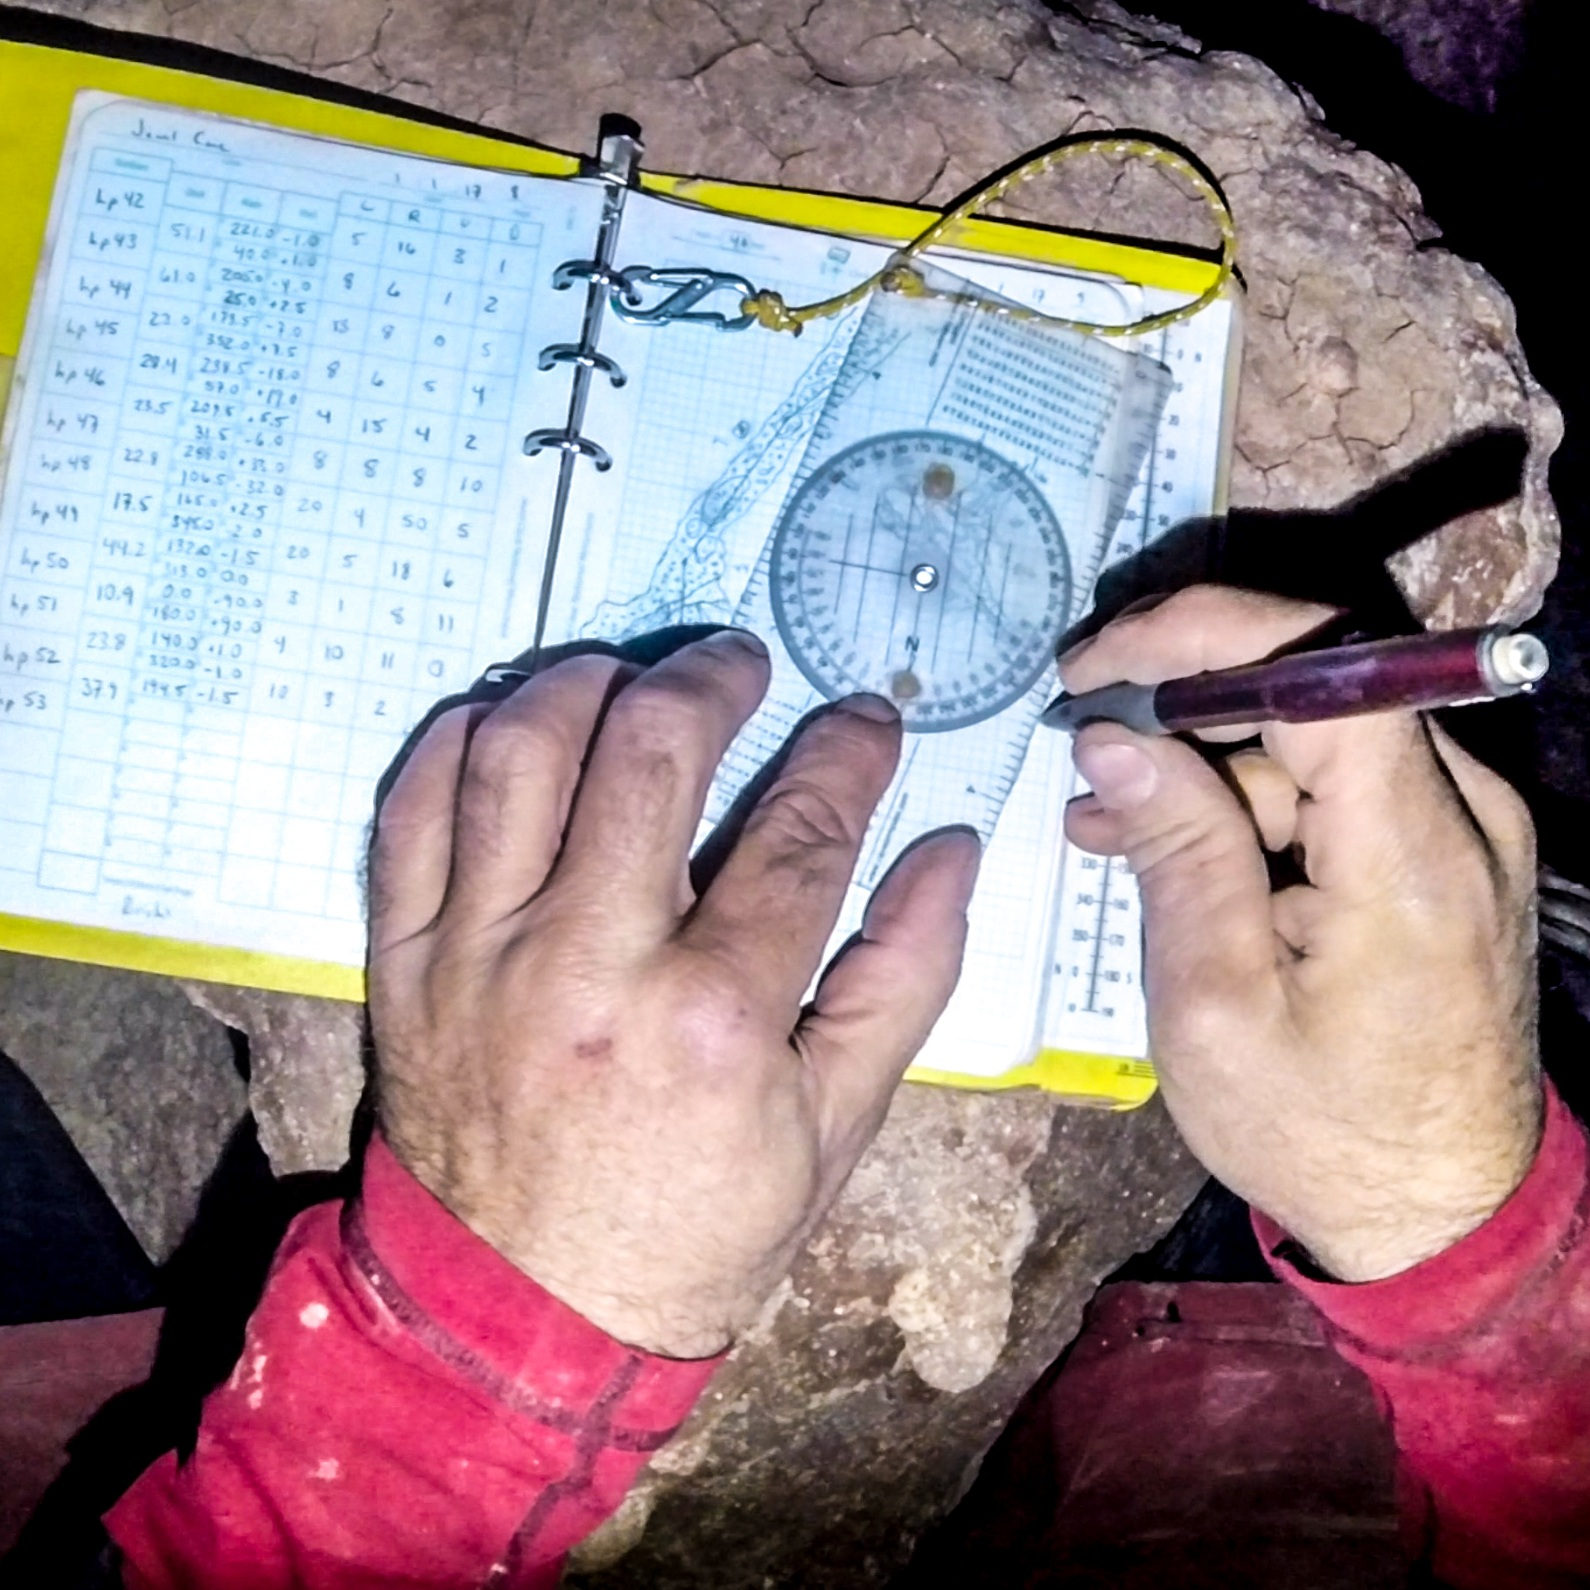 sketching - The most difficult cave survey task requiring the highest level of expertise and experience is sketching. Organizing the sketch book, structuring the sketching workflow, and gaining experience in the use of protractors or digital device software will improve proficiency.